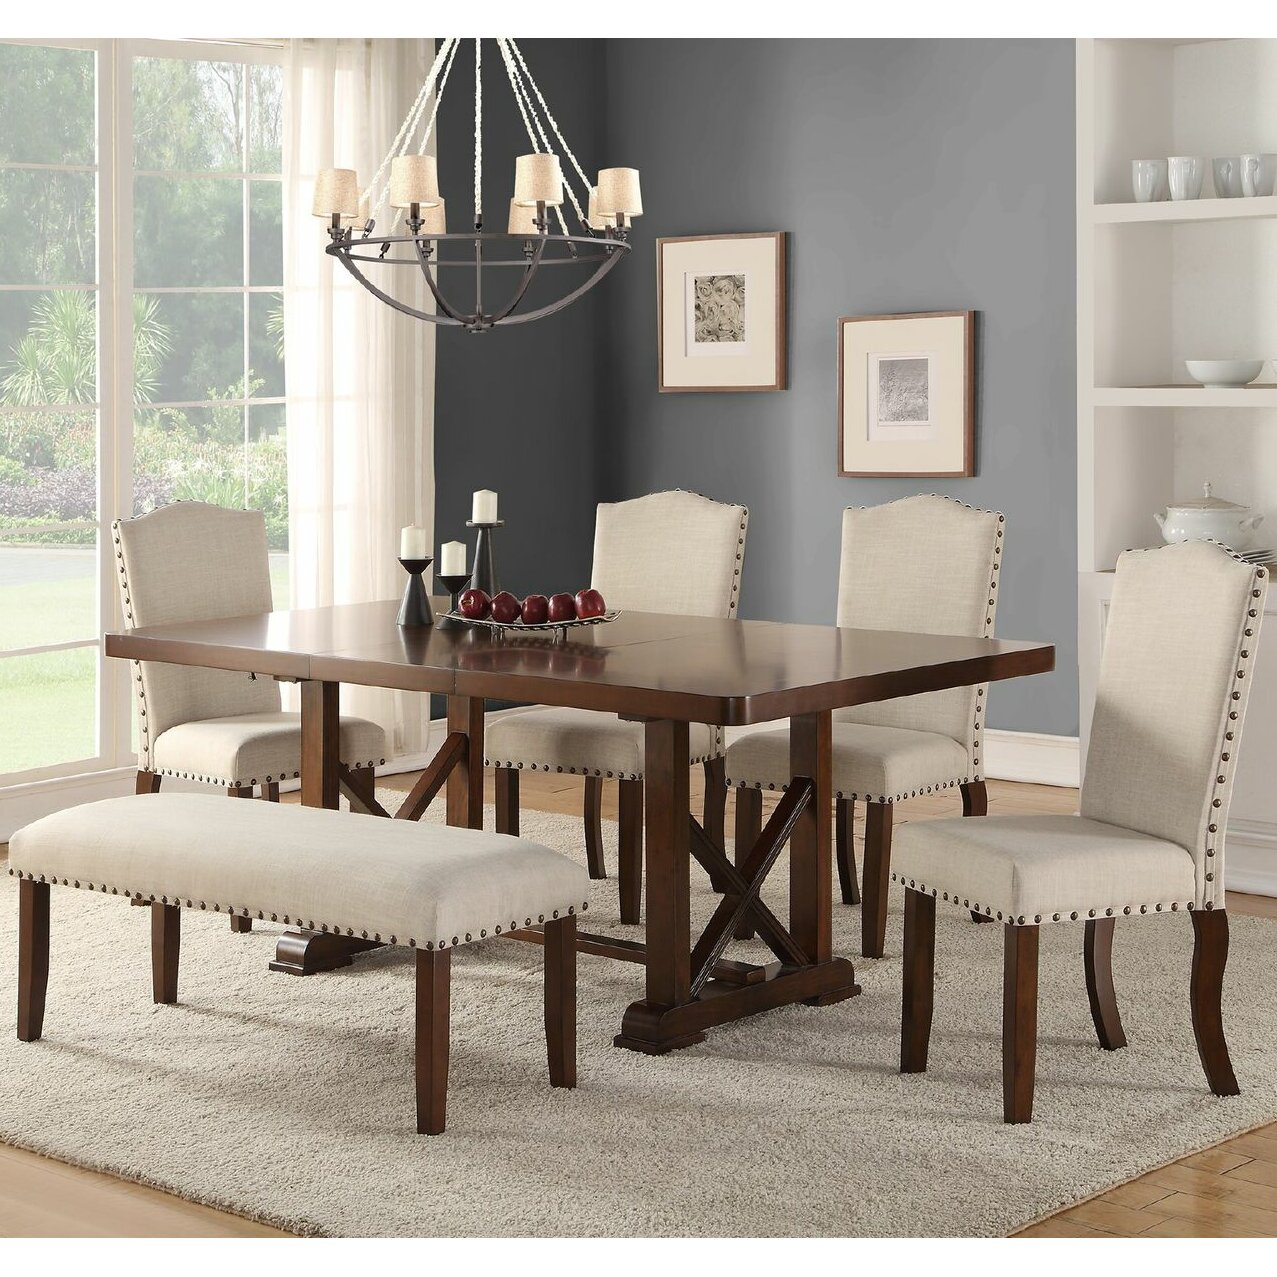 Indoor Picnic Style Dining Table Bench Kitchen Dining Room Sets Youll Love Wayfair